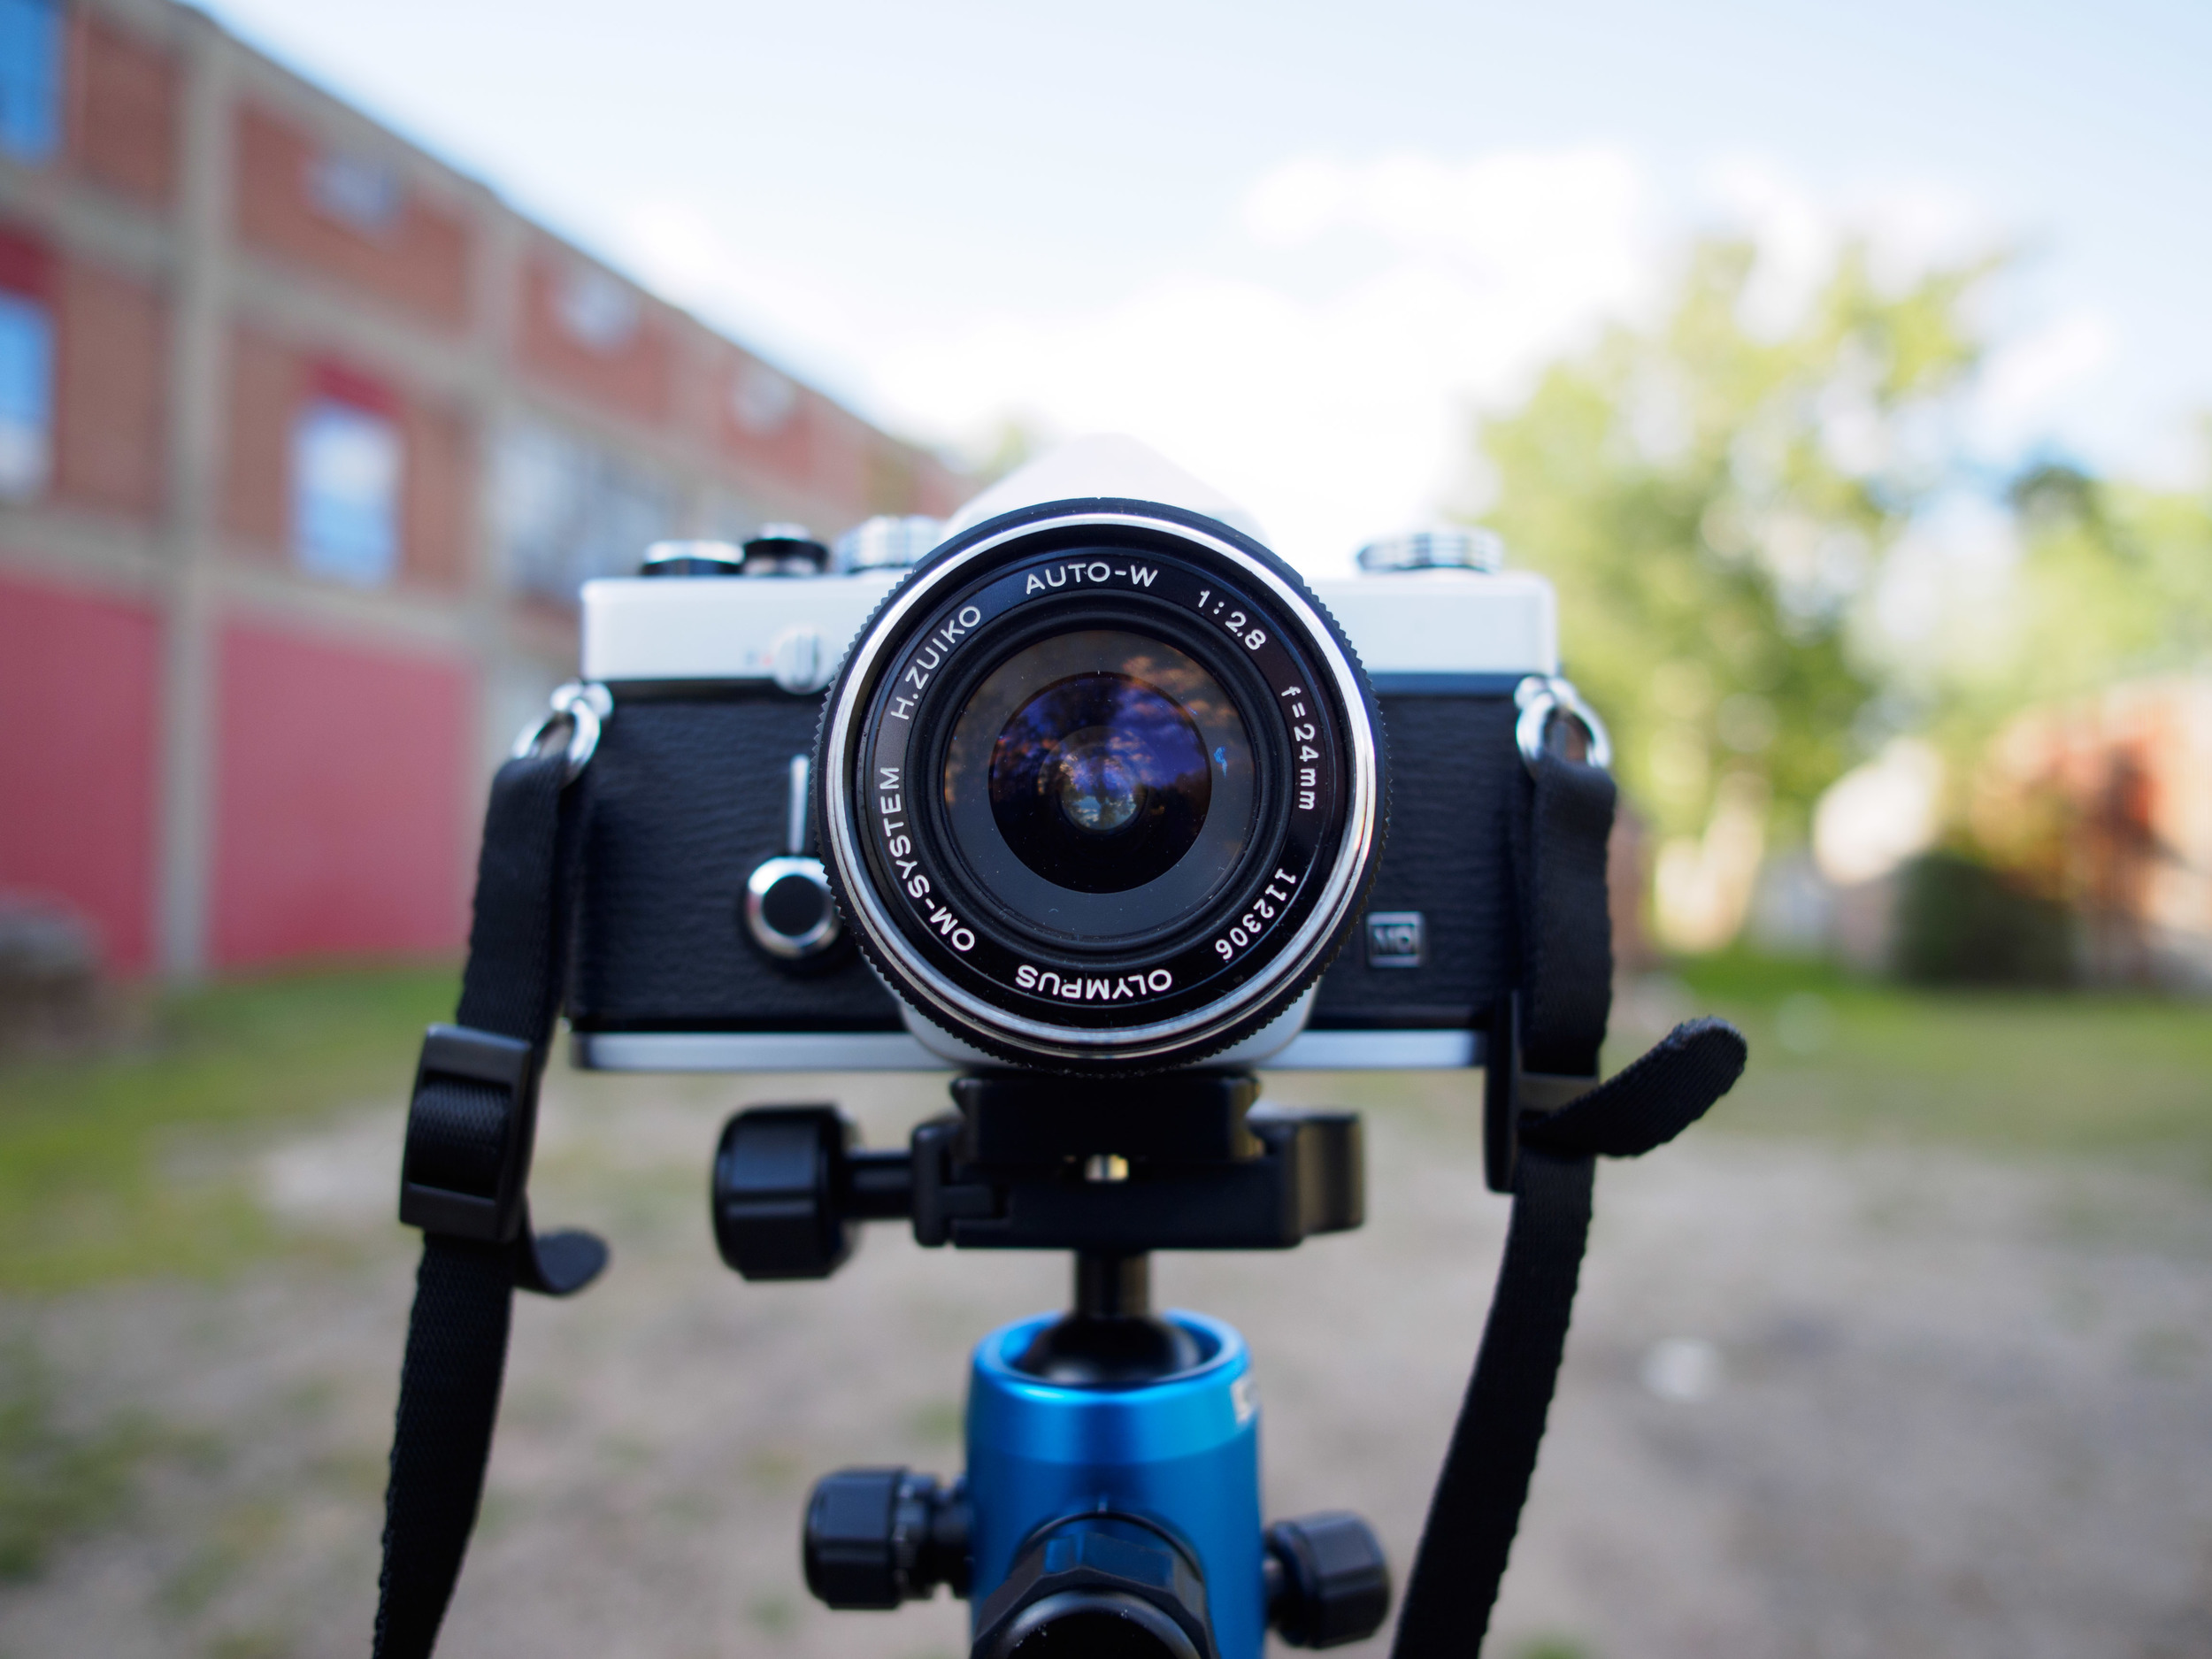 The 12mm f/2 wide open at f/2 SOOC.